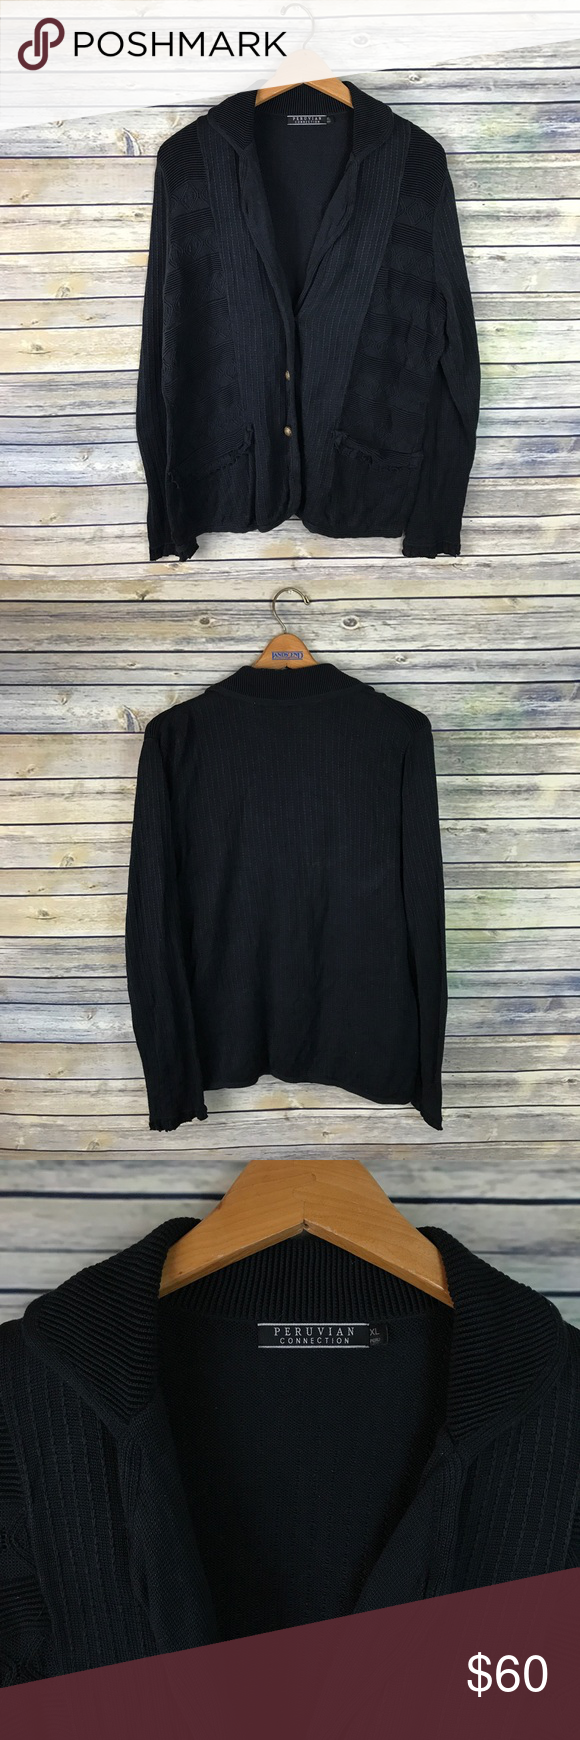 Peruvian Connection Classic Black Cardigan | Peruvian connection ...